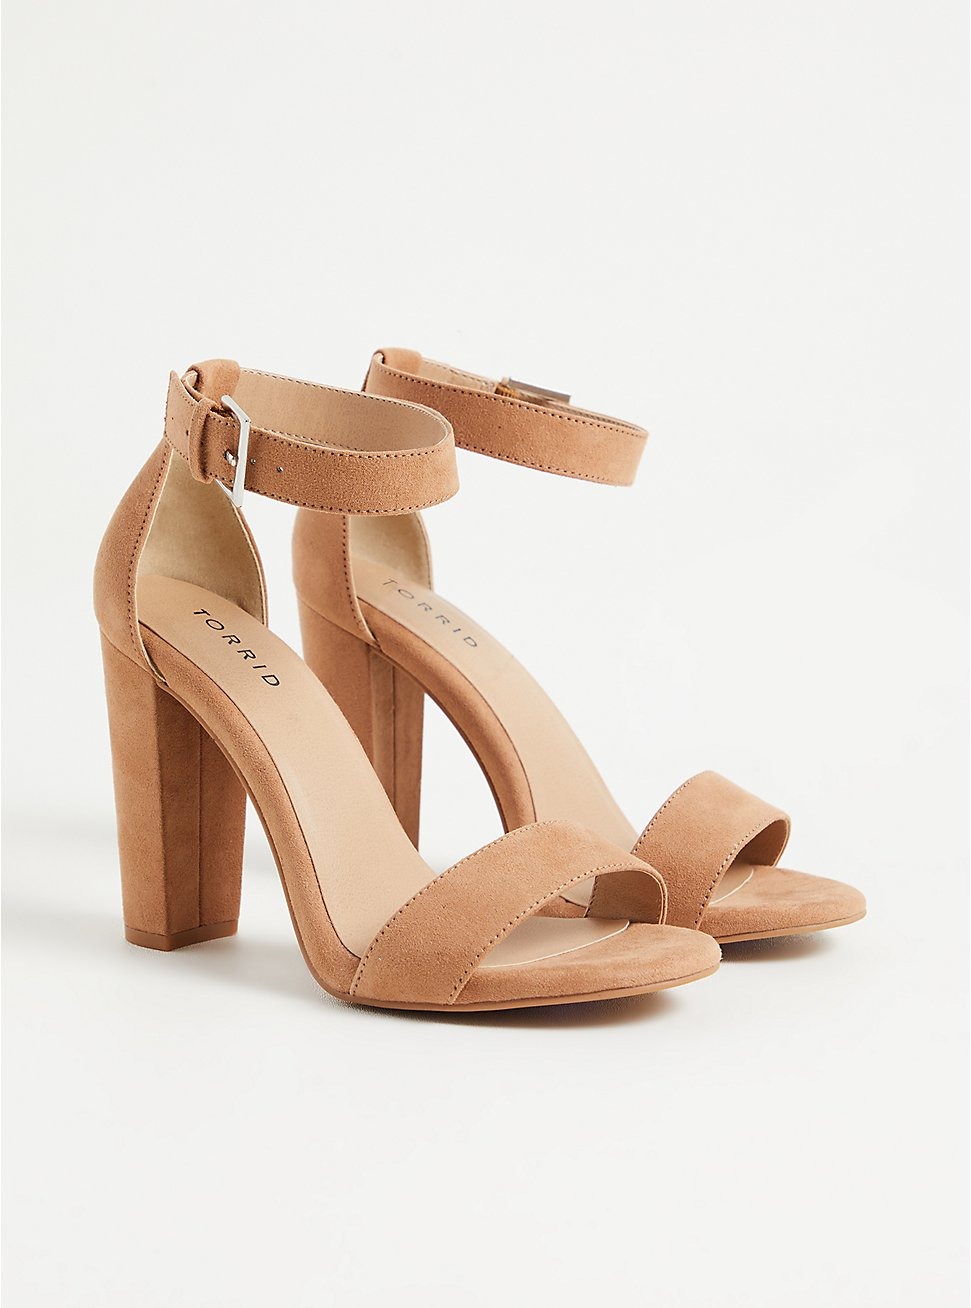 Staci - Light Brown Faux Suede Tapered Heel (WW), BROWN, hi-res